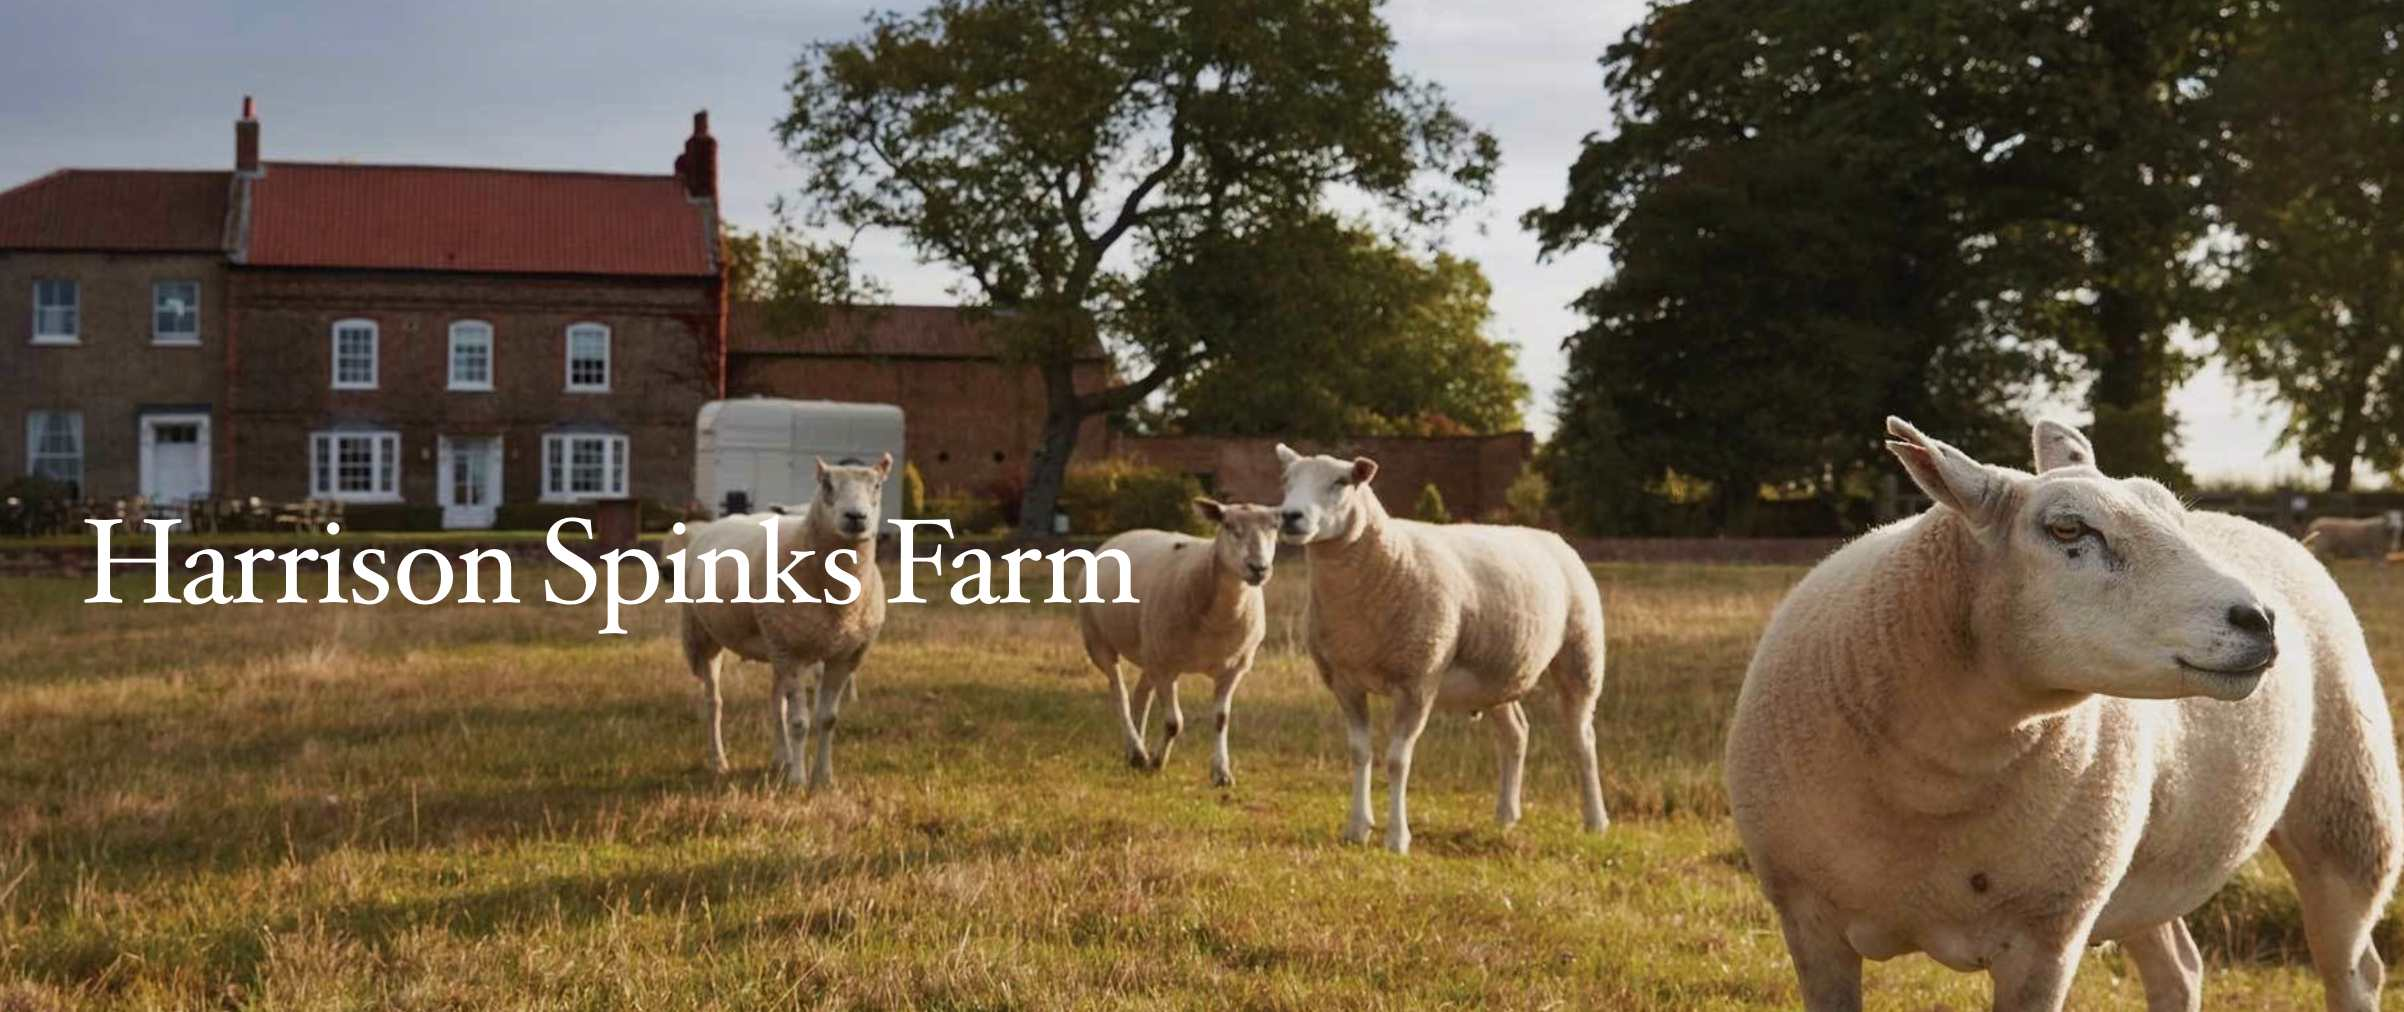 Image of Harrison Spinks Farm with the prize sheep standing in a field